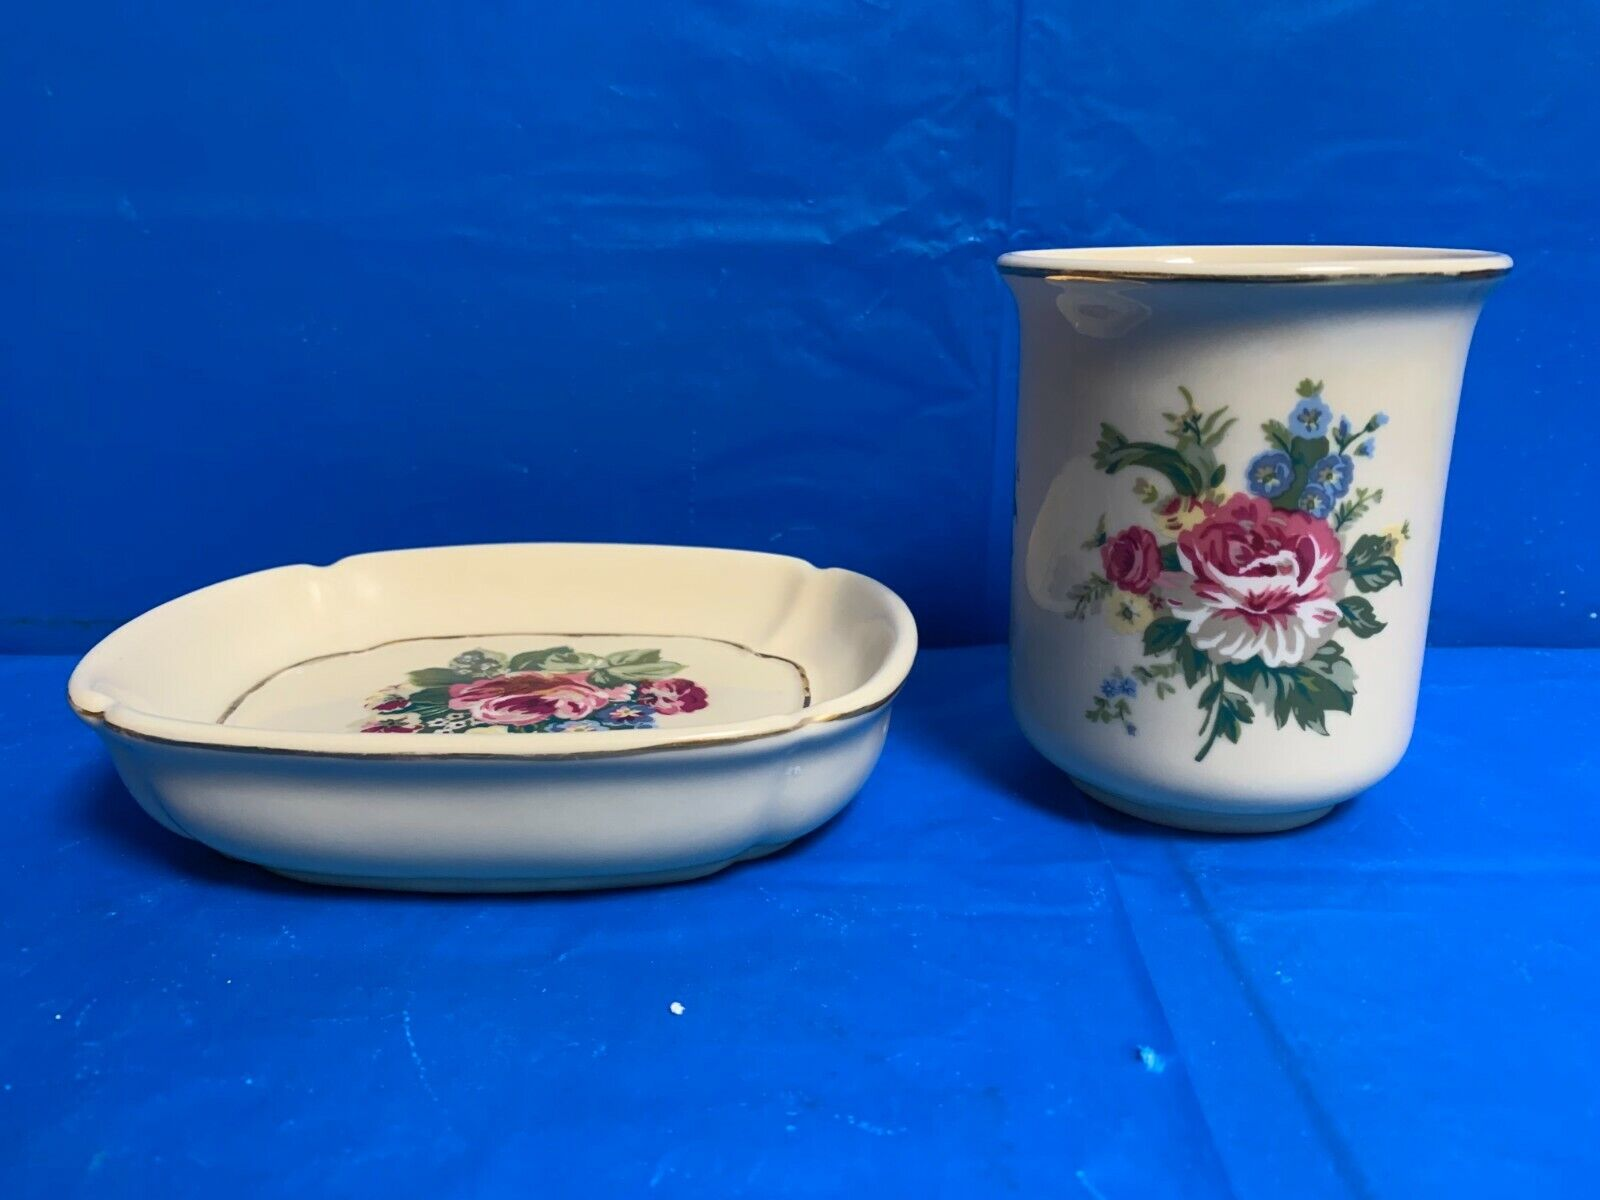 Vintage Spring Maid Ceramic Soap Dish & Cup with Rose Pattern